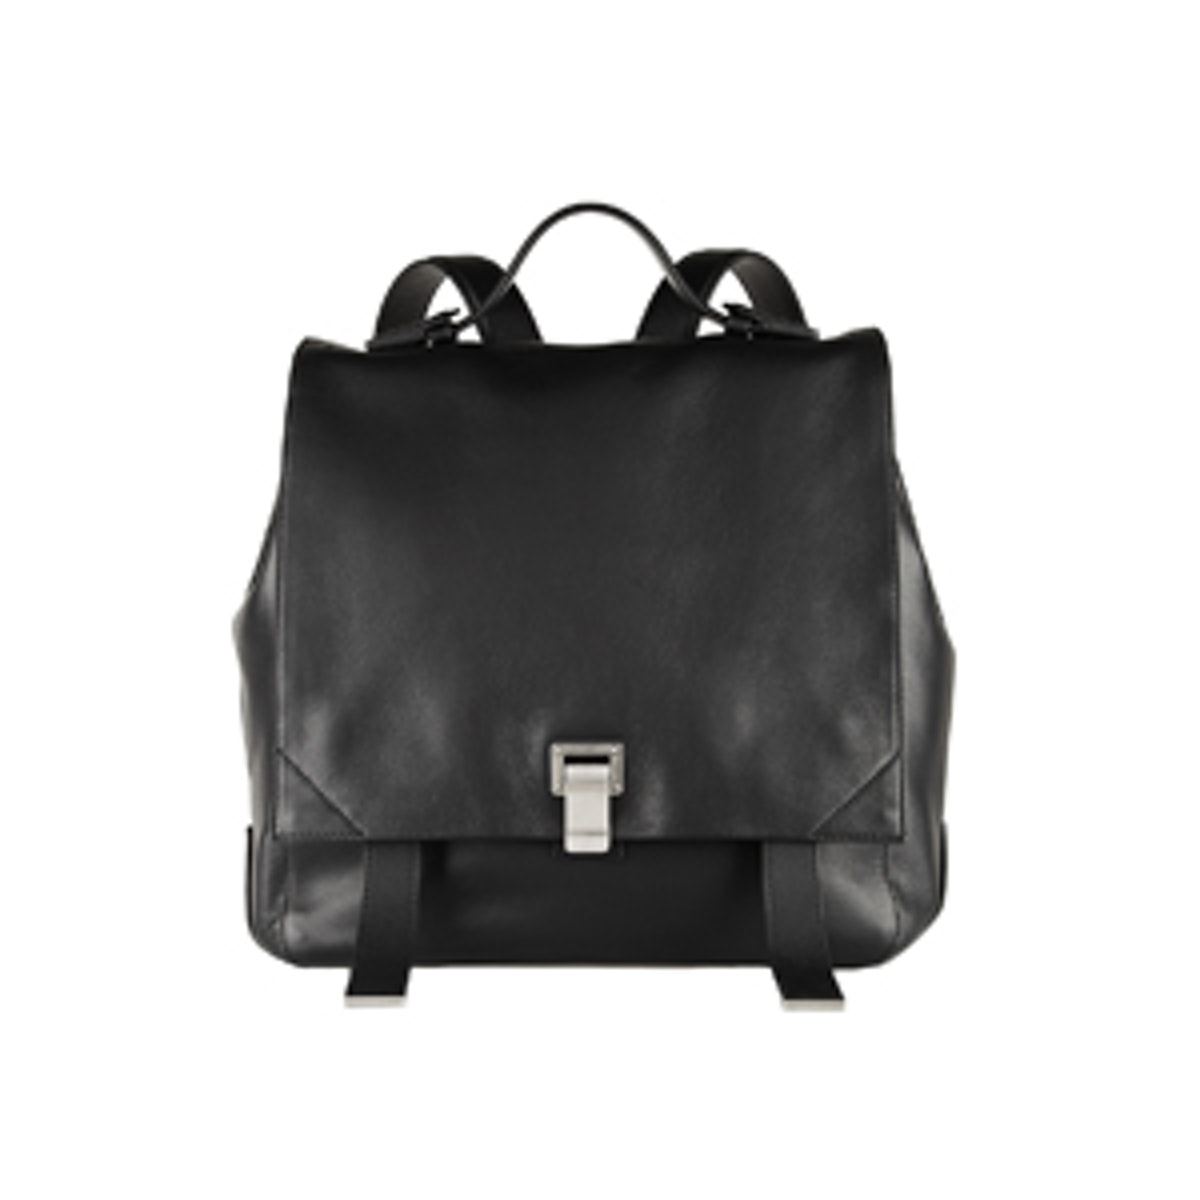 PS Leather Backpack